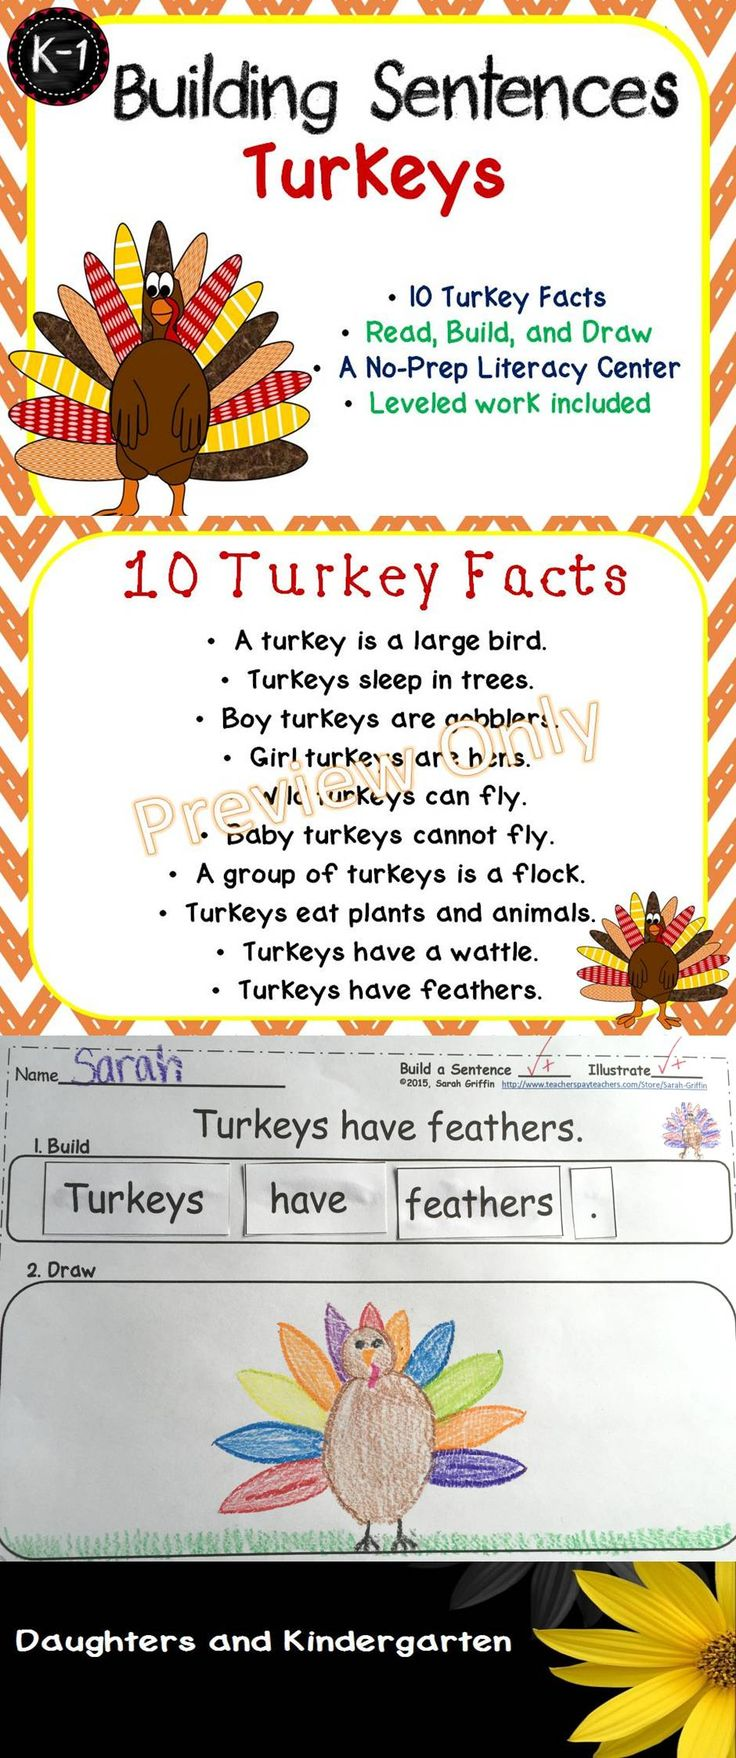 19 best Thanksgiving images on Pinterest | Crafts, About turkey ...